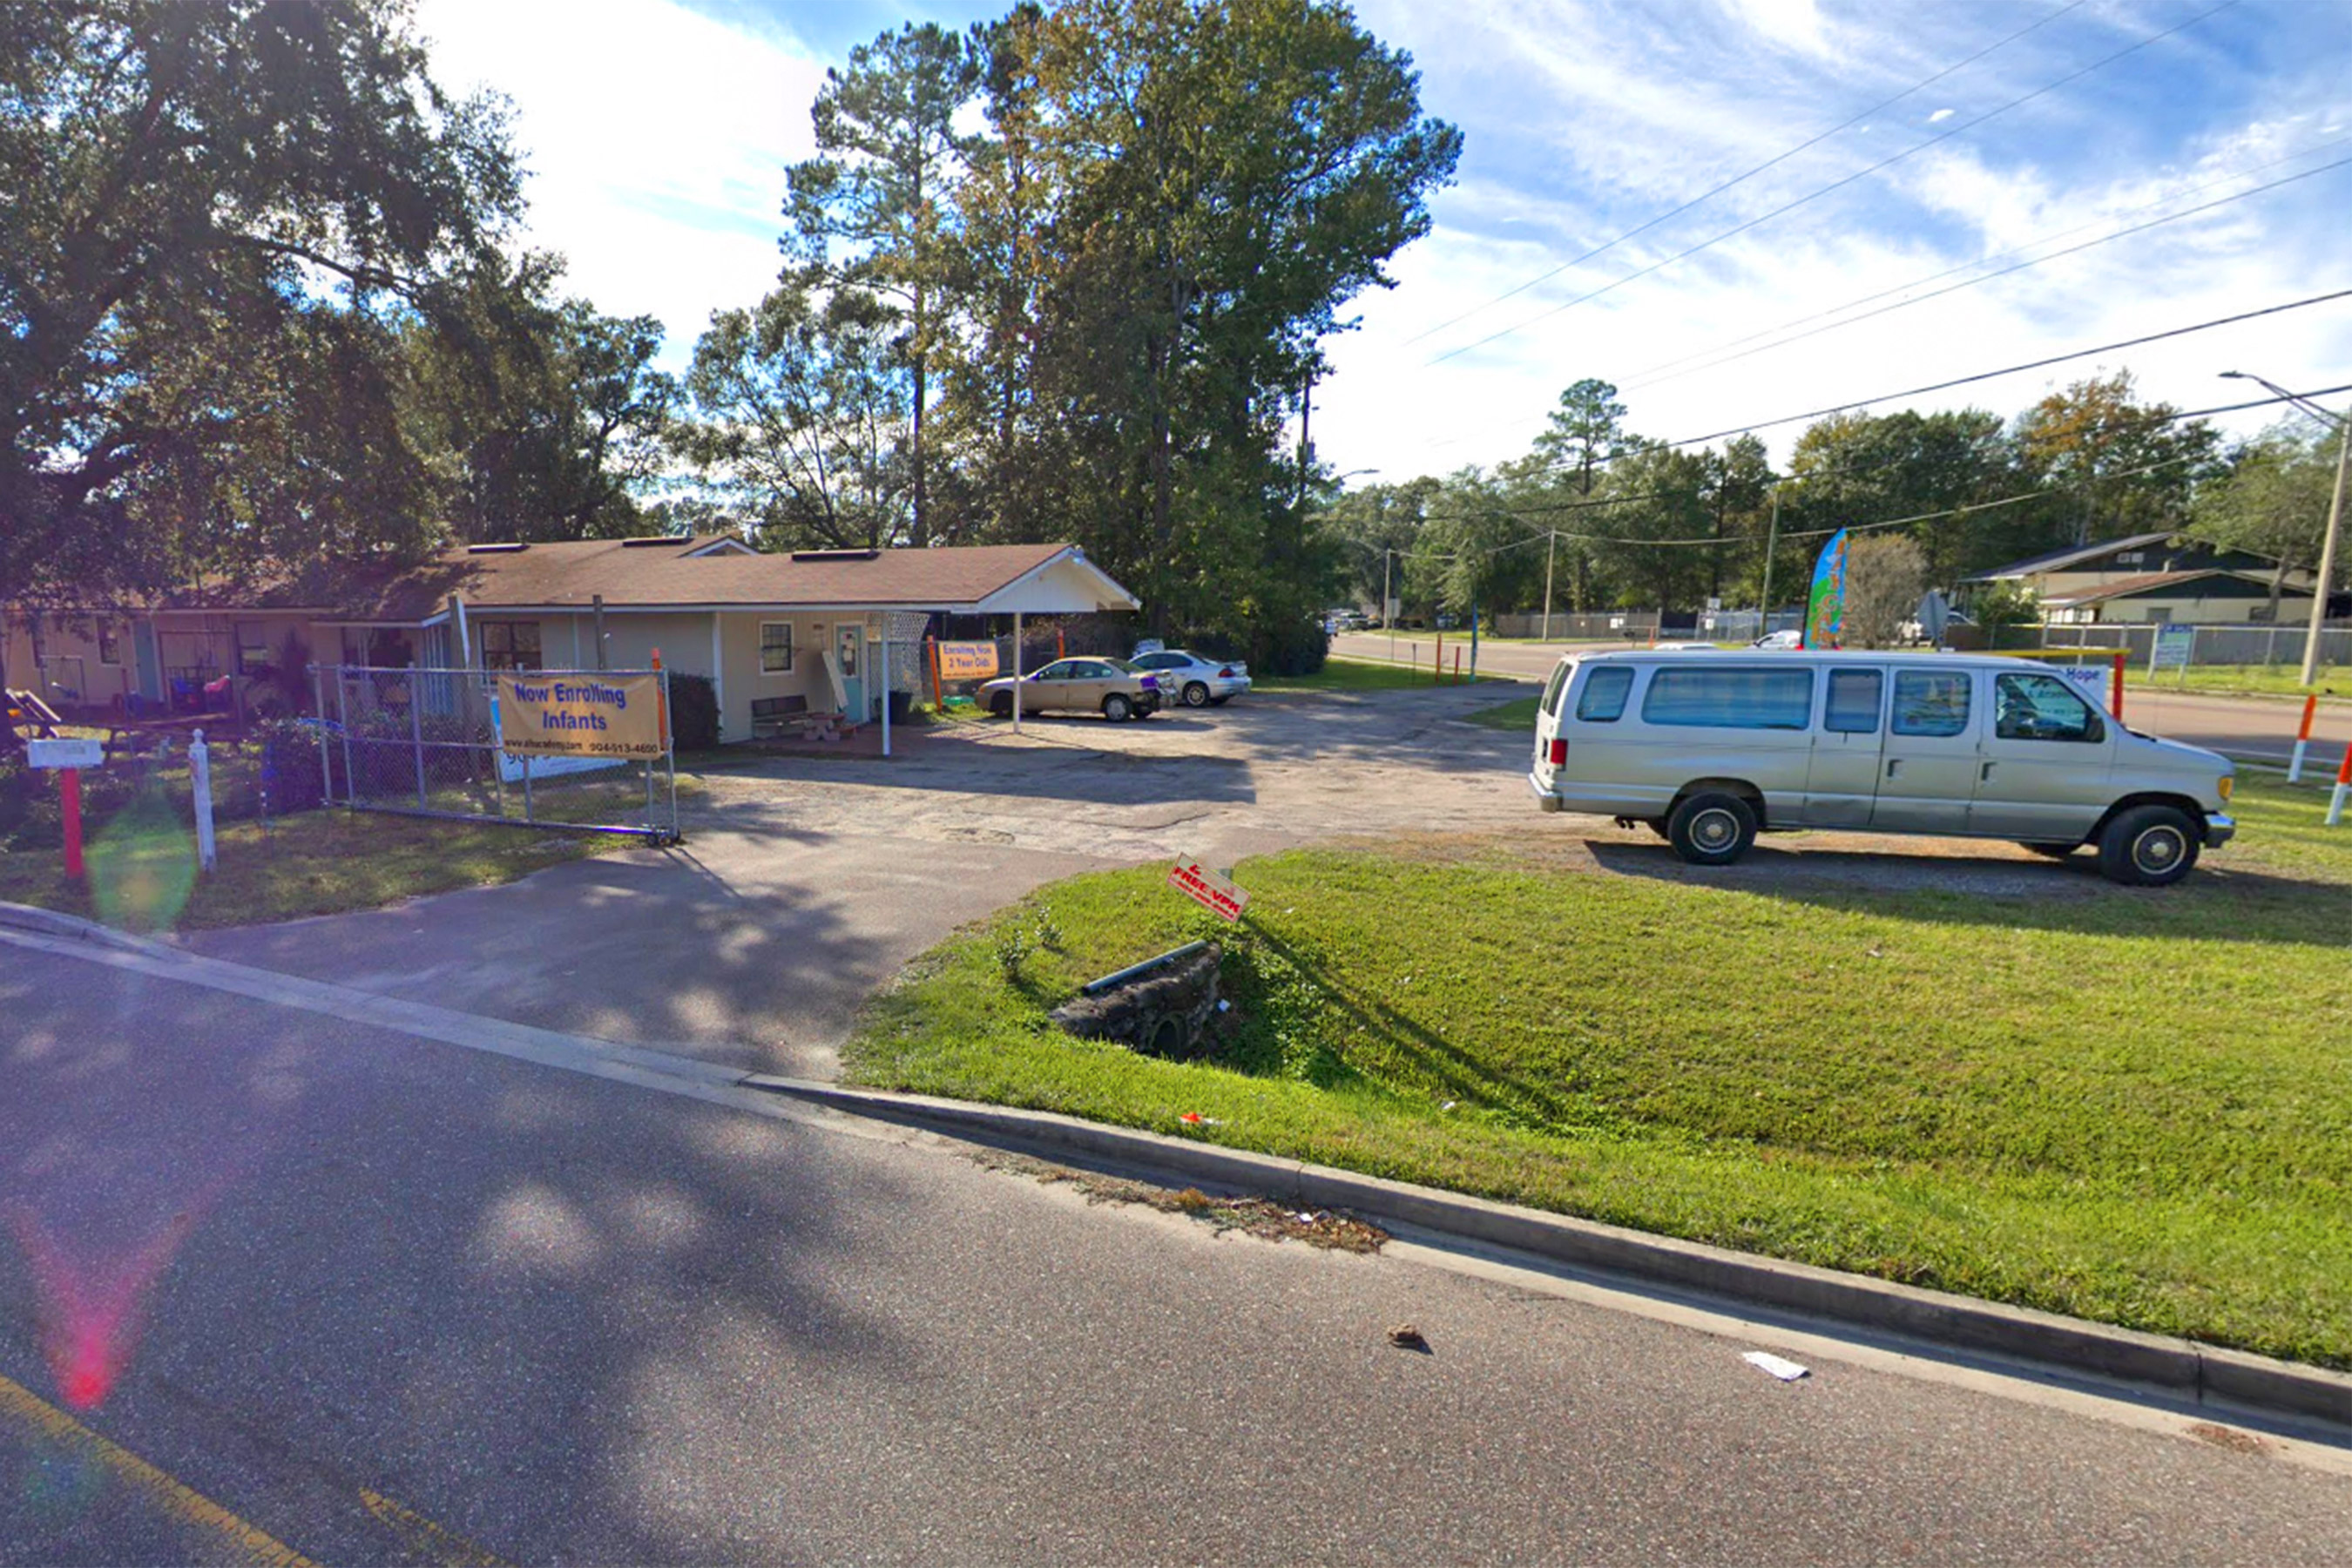 Florida Baby Dies After Being Forgotten in Her Daycare's Van for 5 Hours in 92-Degree Weather